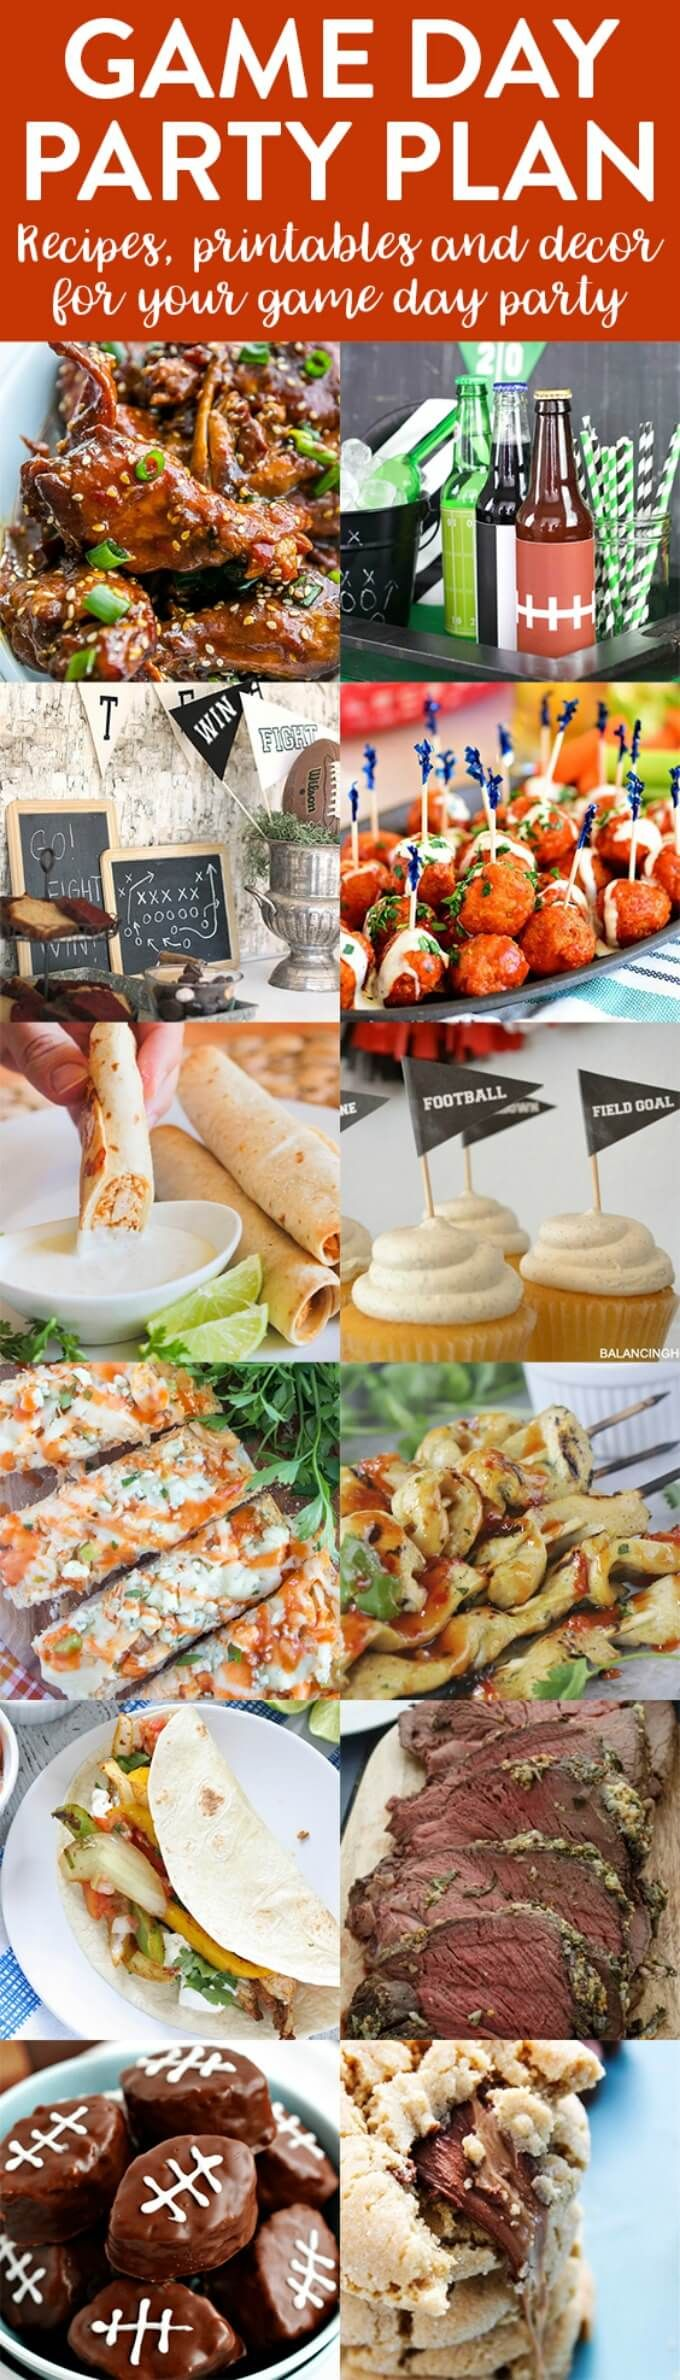 12 Game Day Party Plan Ideas, Recipes, and Decor | http://thecookiewriter.com | @thecookiewriter | #gameday | Here are 12 Game Day recipes, printables, and decorations for your party!